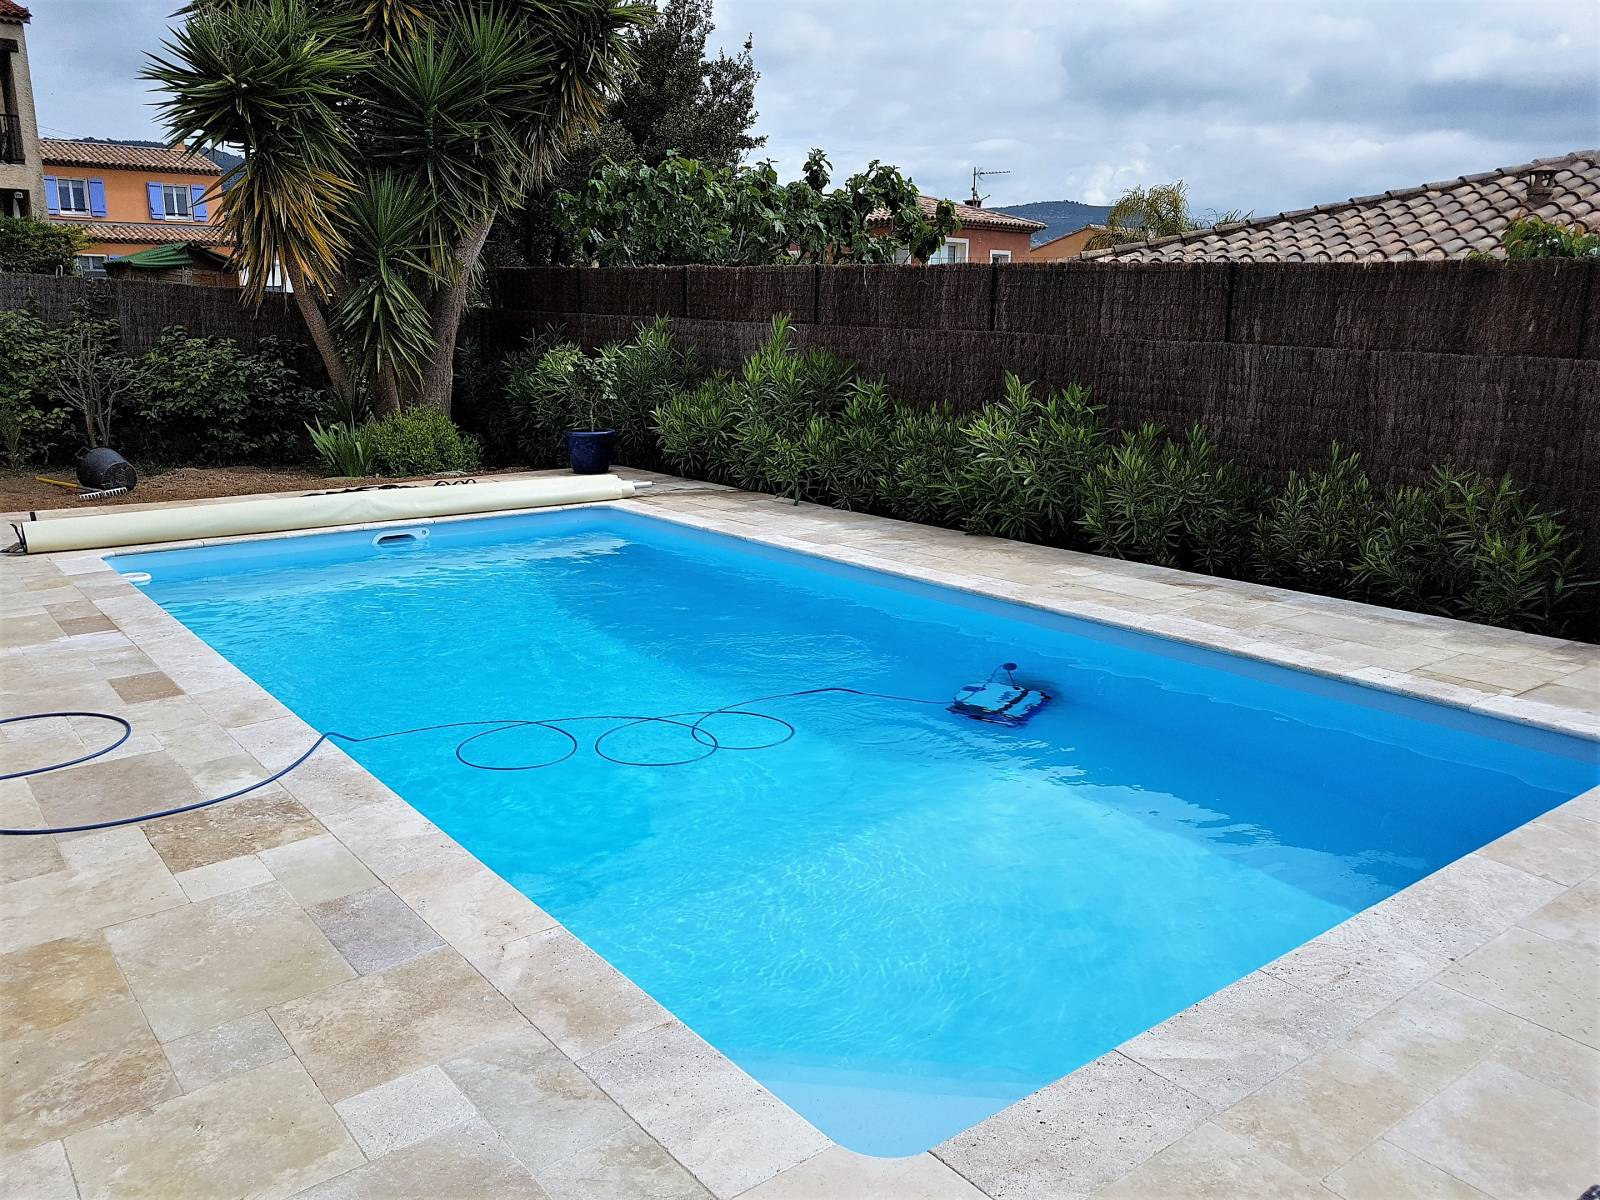 Piscine 8x4 m bleu rectangulaire jce piscines for Piscine 8x4